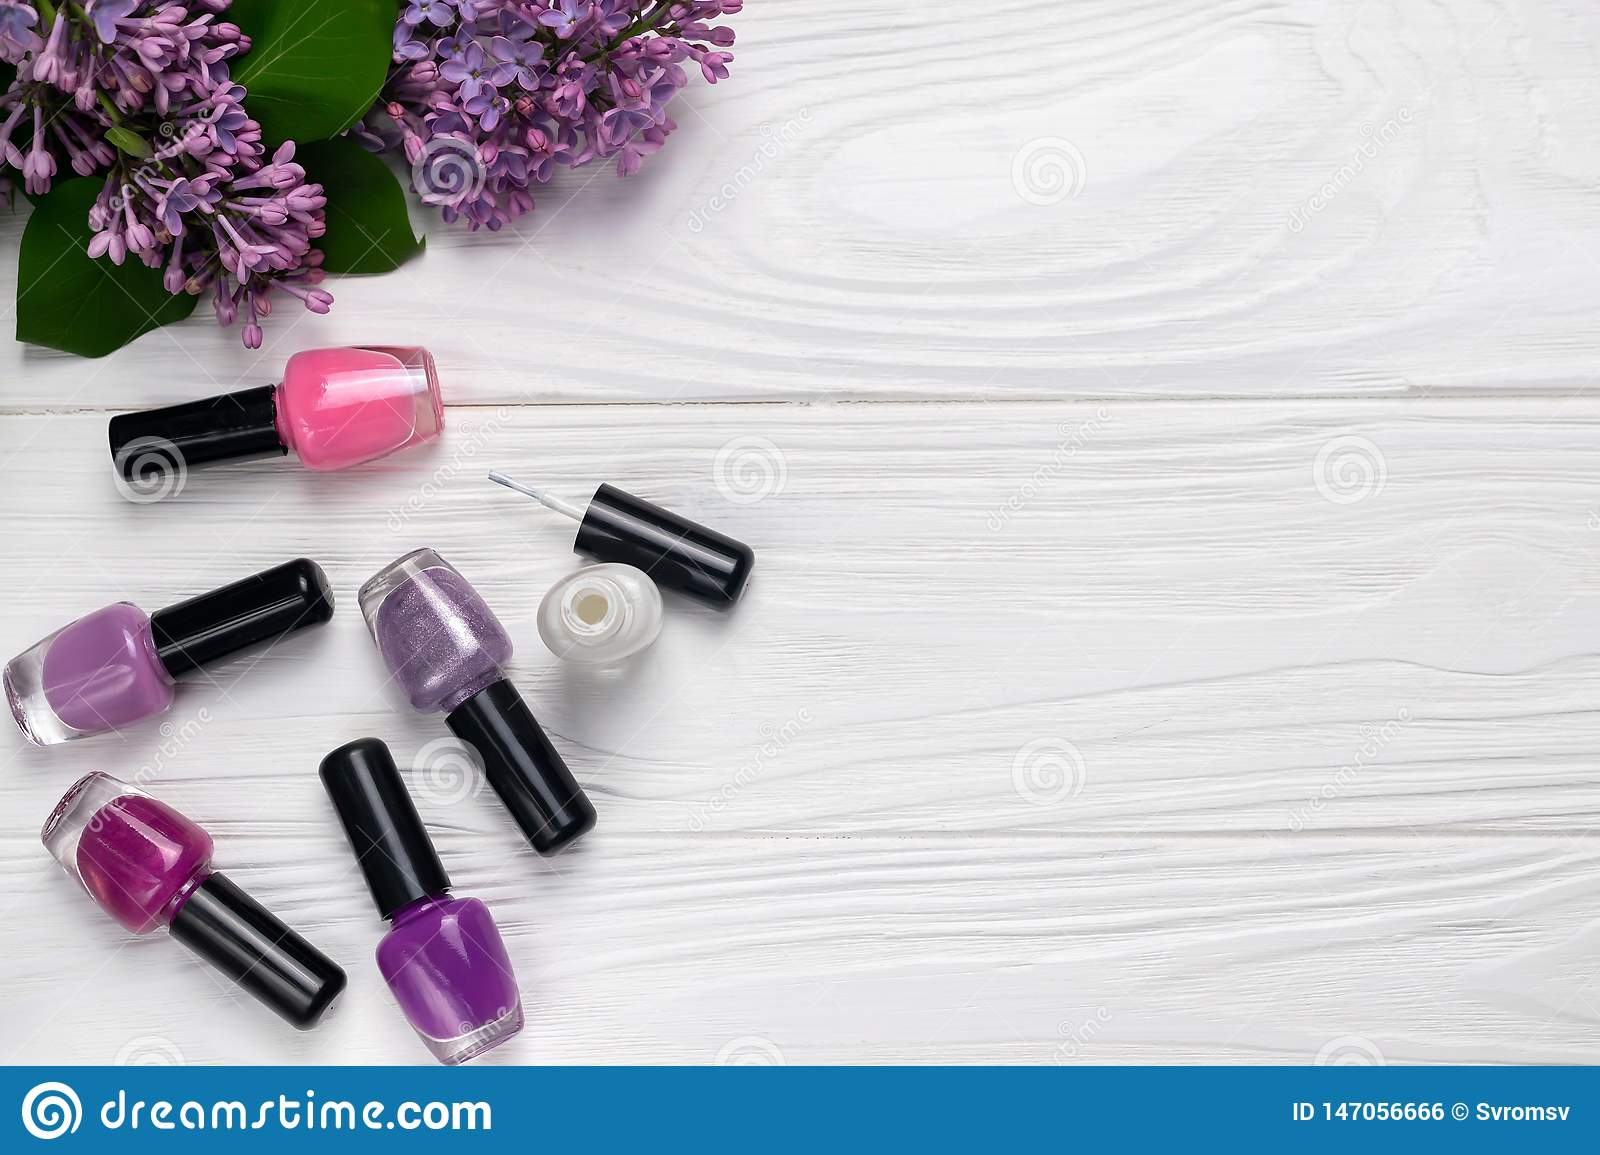 Bottles of nail polish on white wooden background with spring flowers top view with space for text